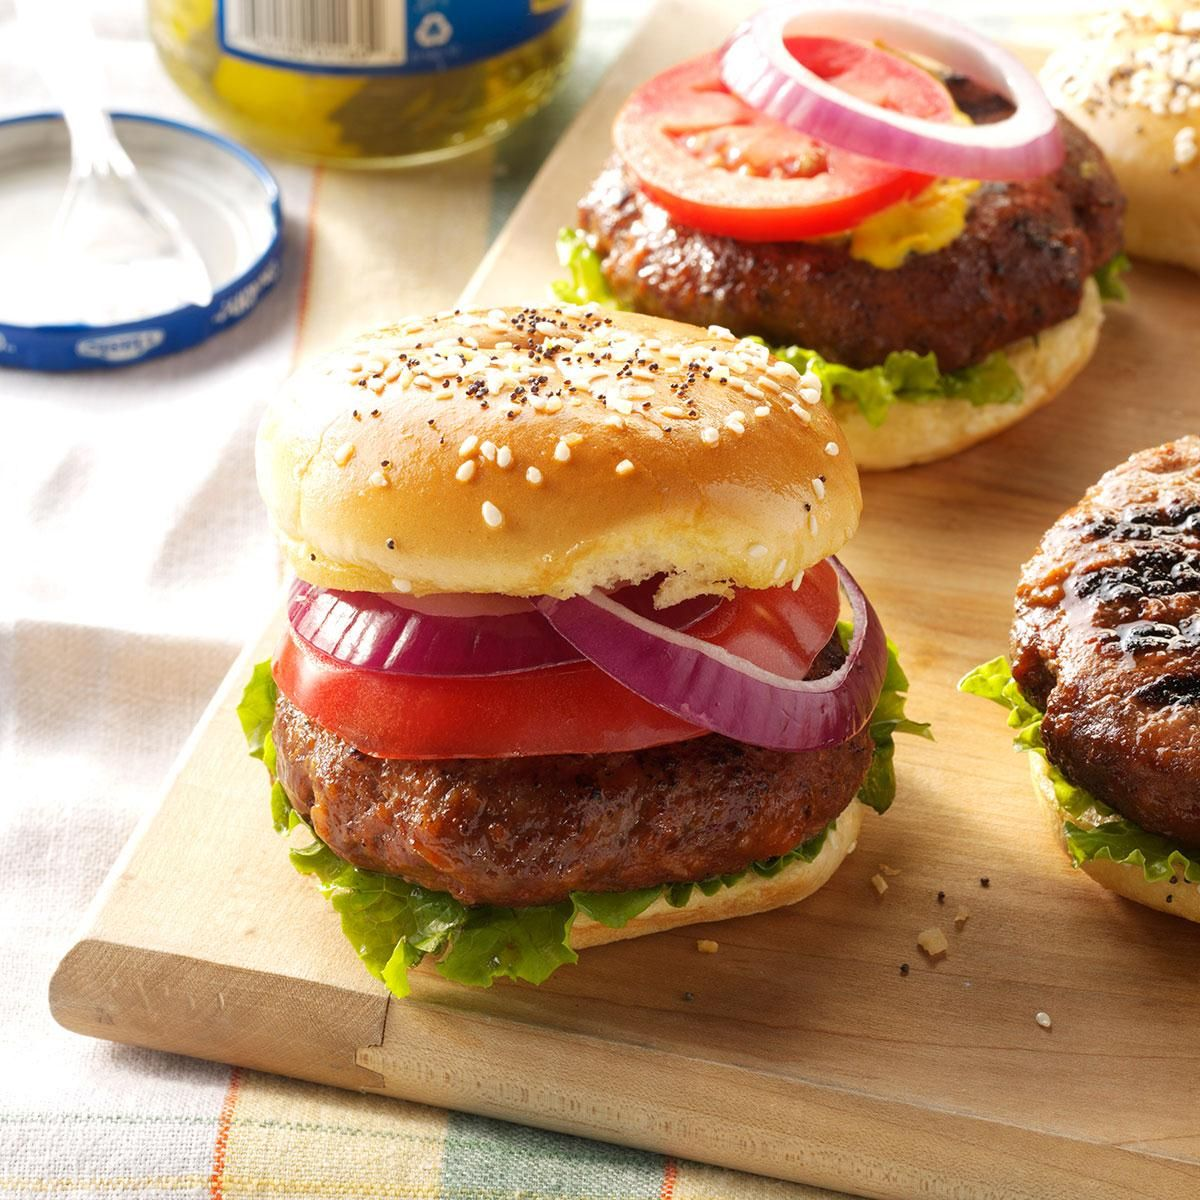 Dad's Cola Burgers Recipe -Before you hand out the drinks, save a little soda to make these burgers. Cola helps soften the texture and kick up the flavor. Used in the meat mixture and brushed on during cooking, it takes this football favorite to another level. —Emily Nelson, Packers Women's Association, Green Bay, Wisconsin